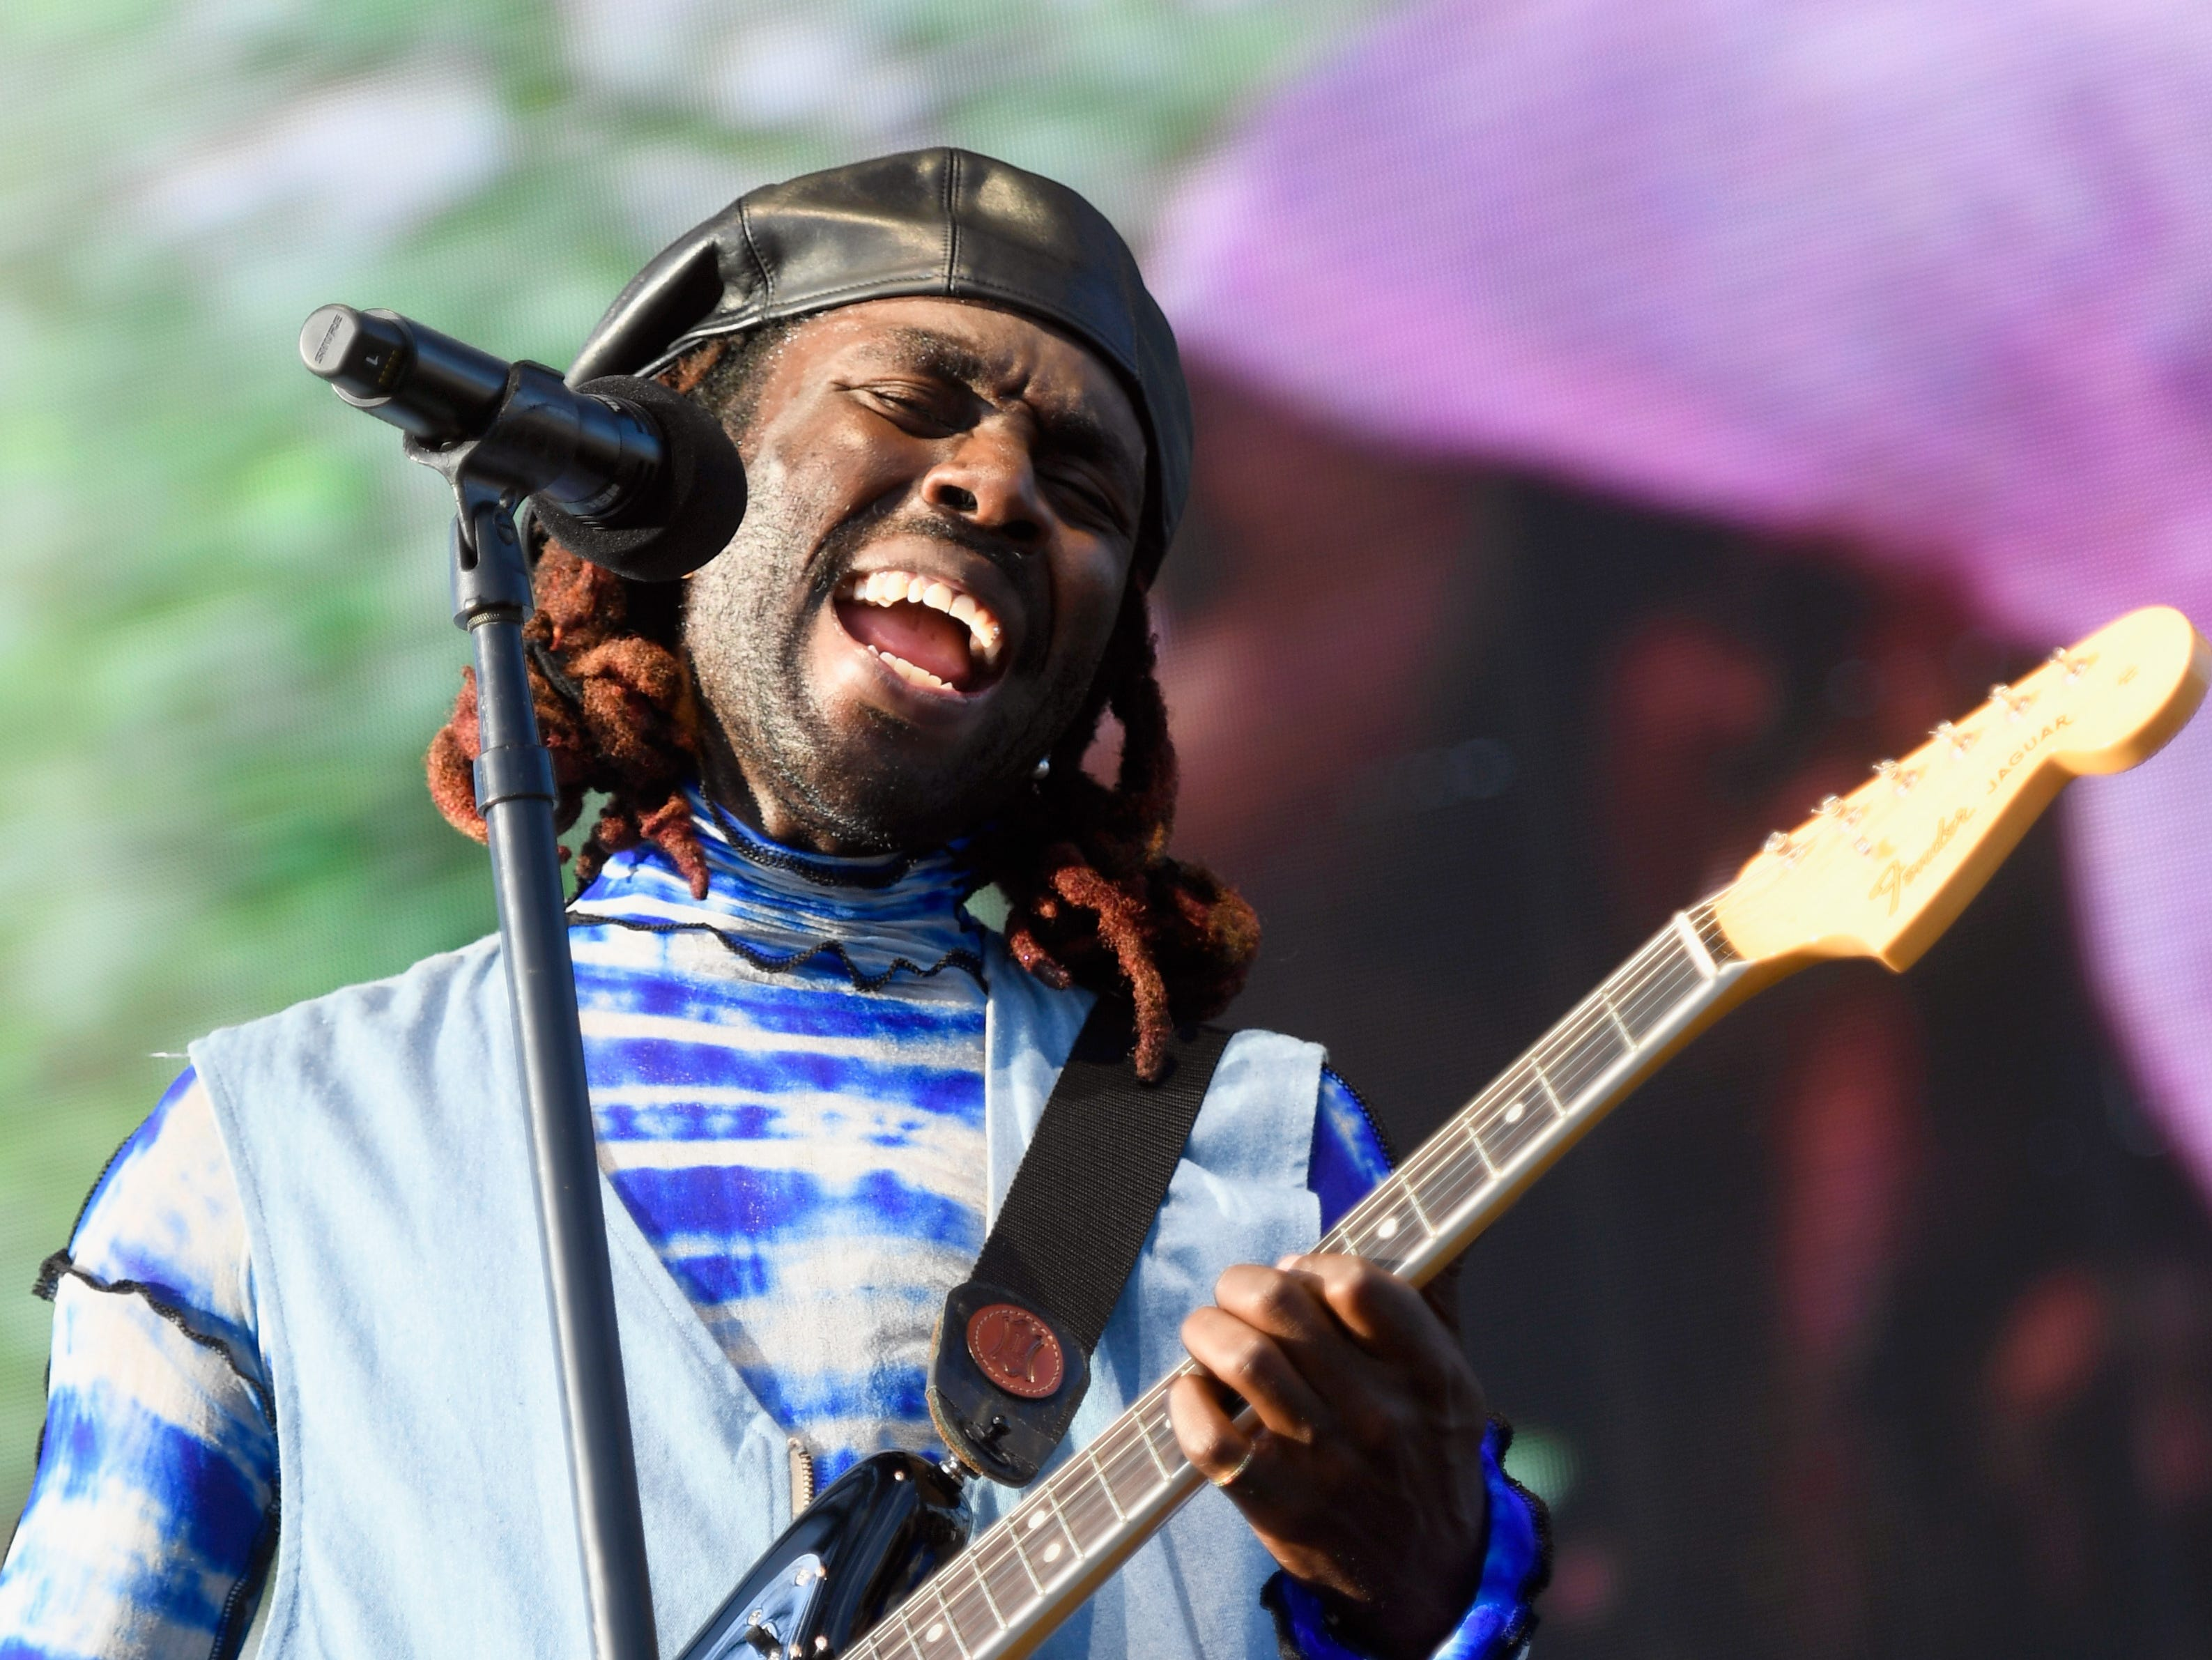 INDIO, CA - APRIL 14:  Dev Hynes of Blood Orange performs at the Outdoor Theatre during the 2019 Coachella Valley Music And Arts Festival on April 14, 2019 in Indio, California.  (Photo by Frazer Harrison/Getty Images for Coachella) ORG XMIT: 775319304 ORIG FILE ID: 1137221962